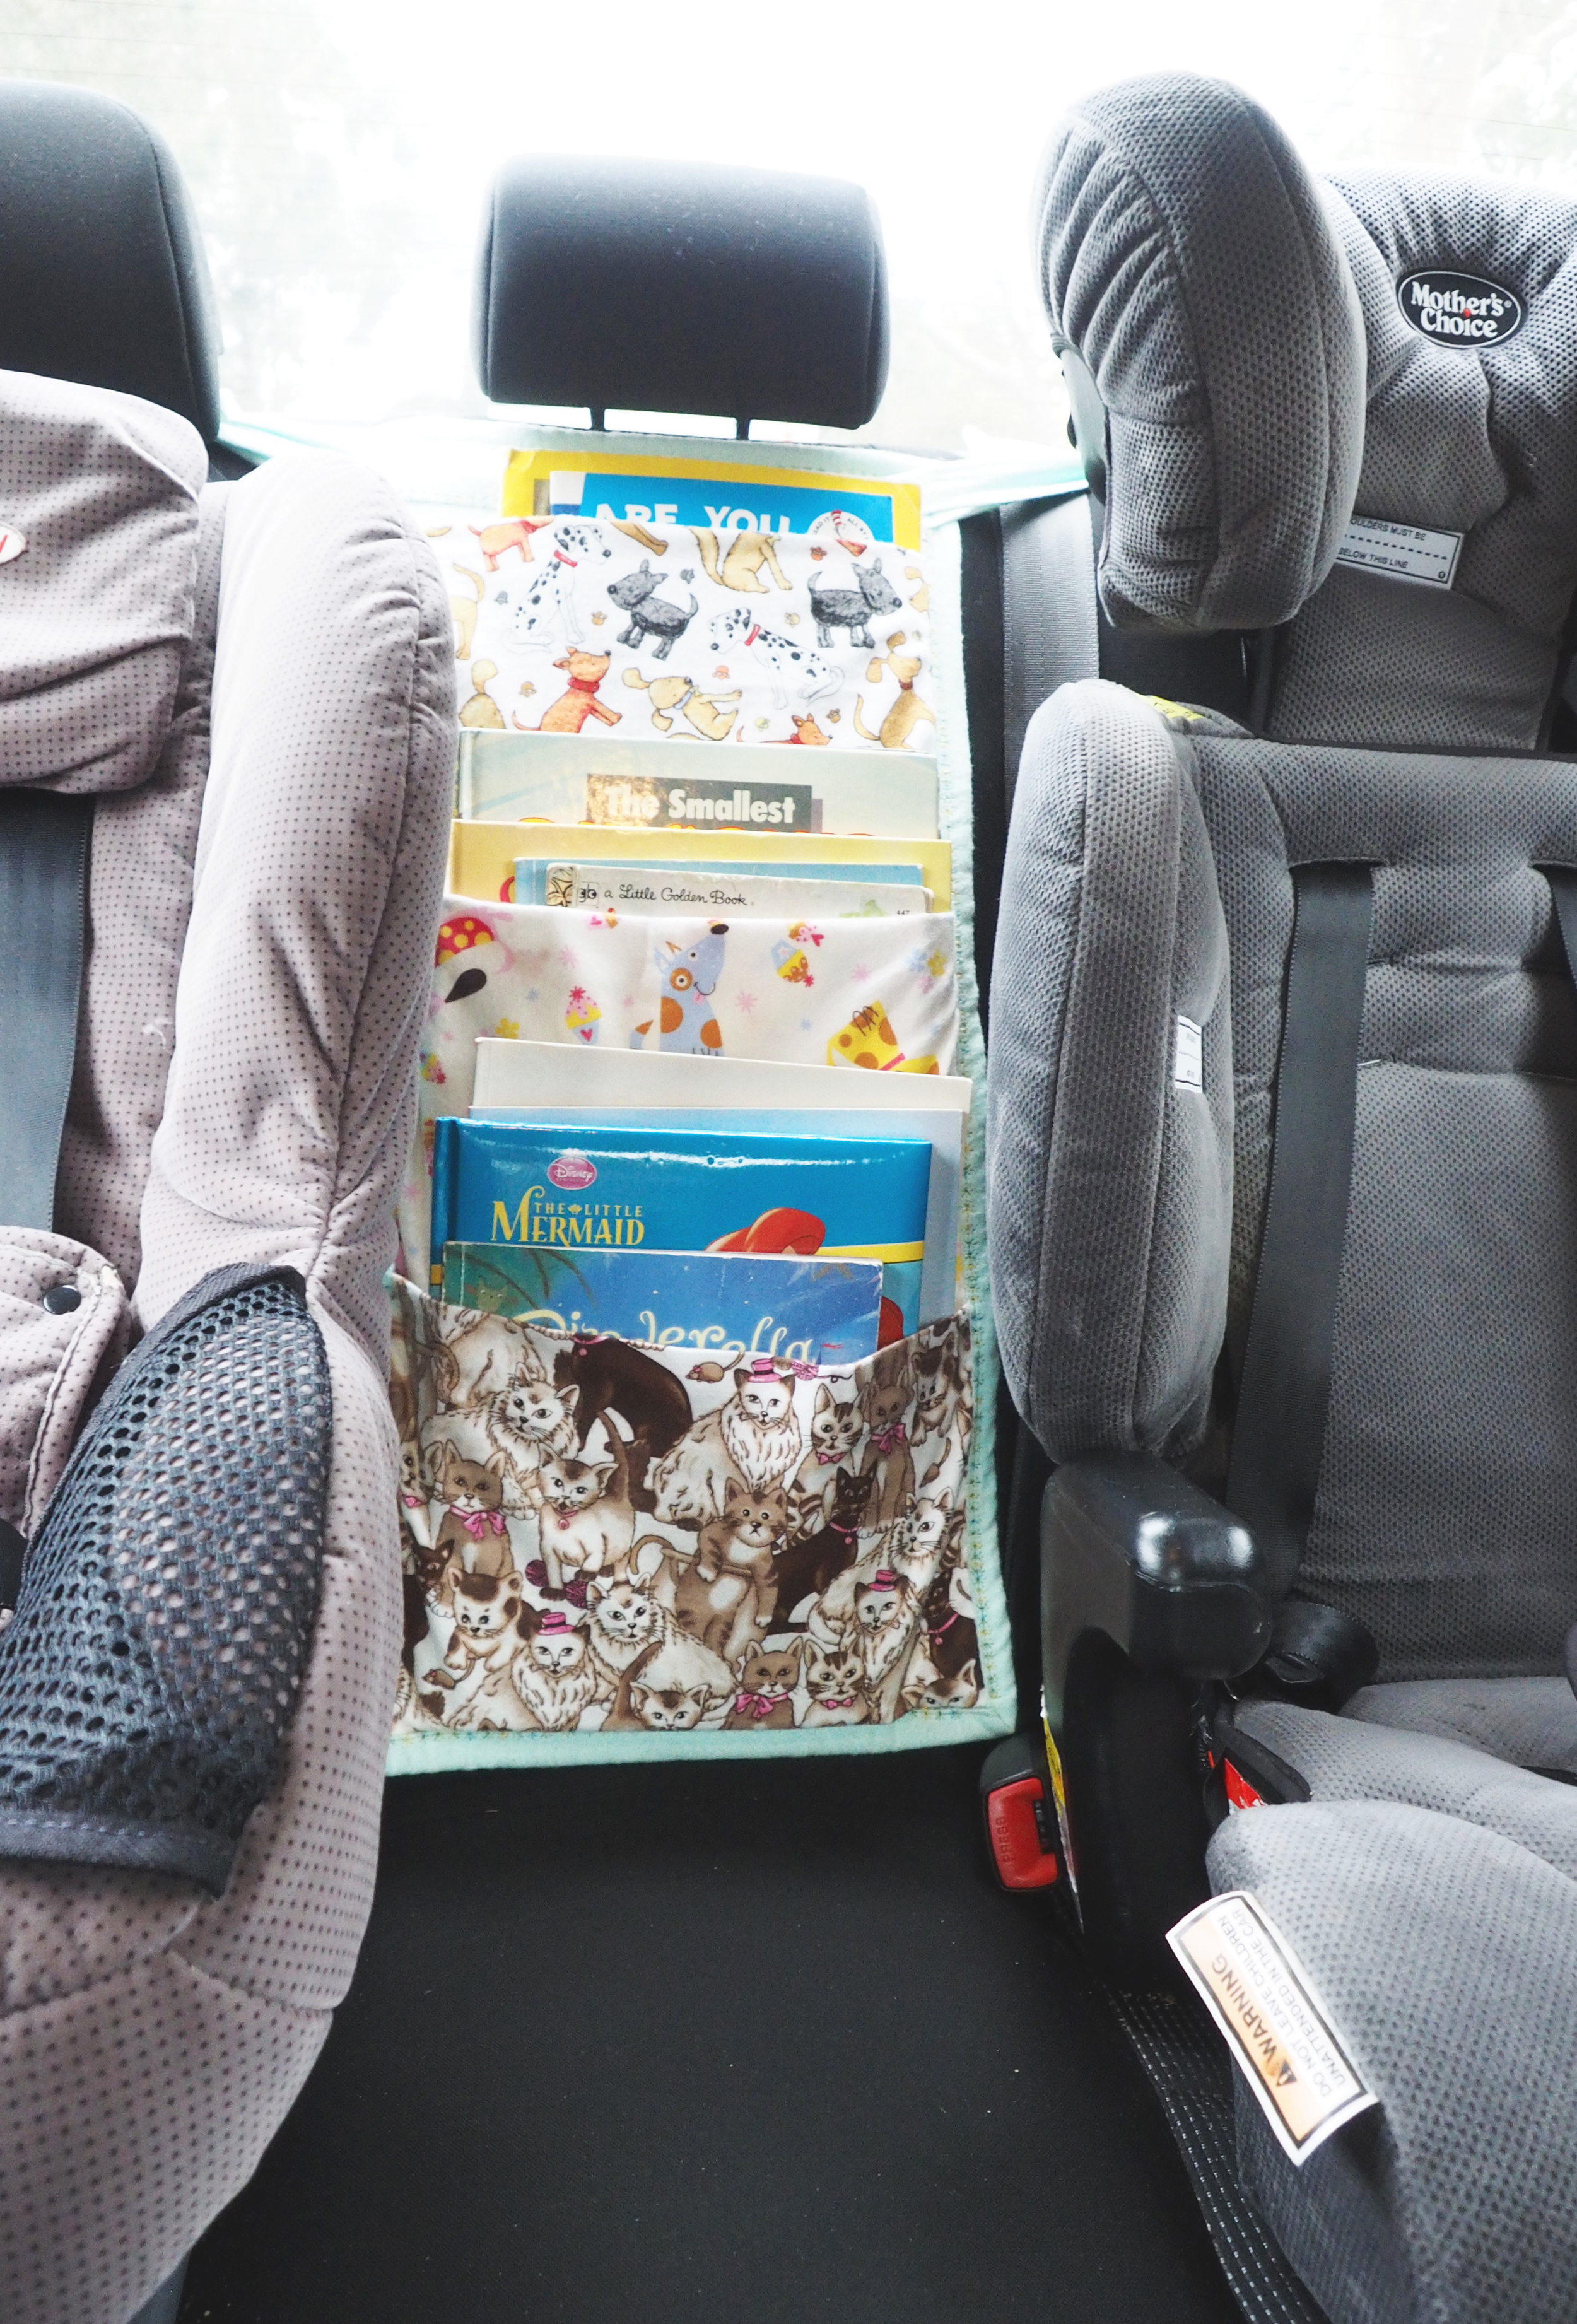 A car travel book bag to keep kids entertained in the car, and maximize storage space in the back-seat - The Organised You